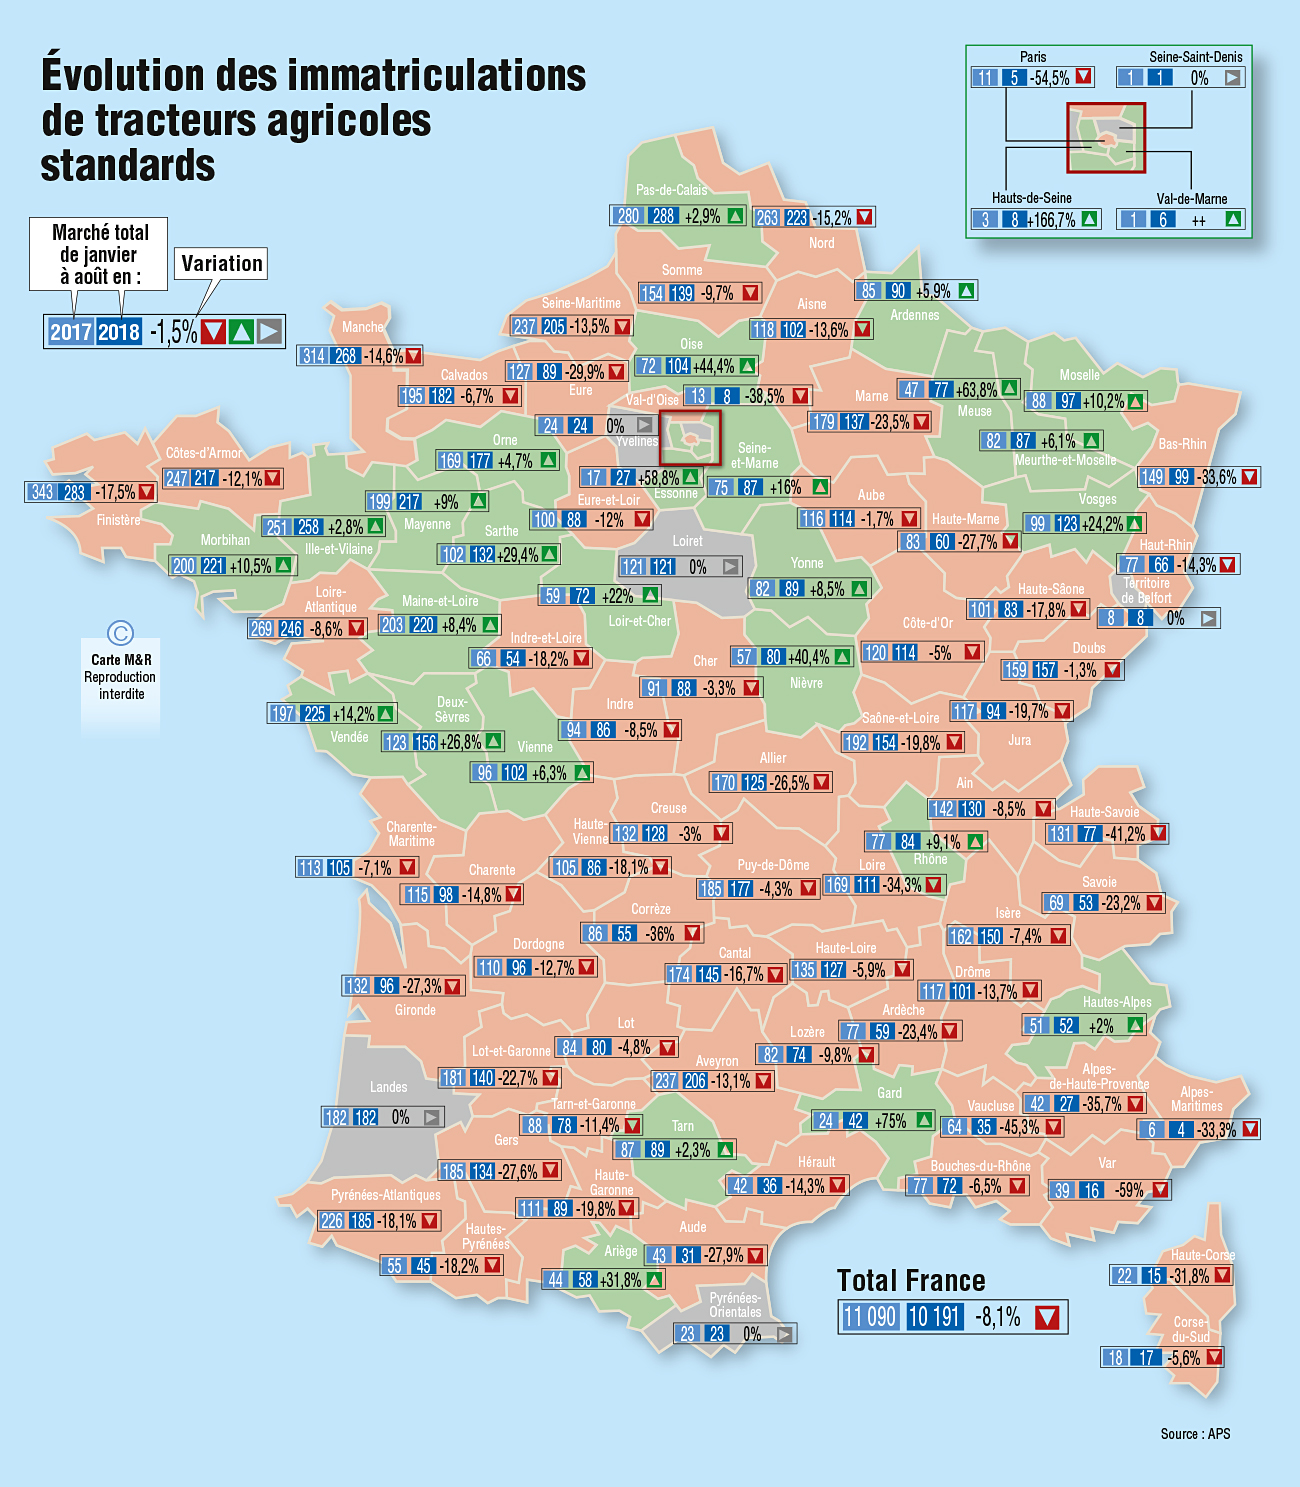 Carte des immatriculations de tracteurs agricoles standards en France d'aout 2018